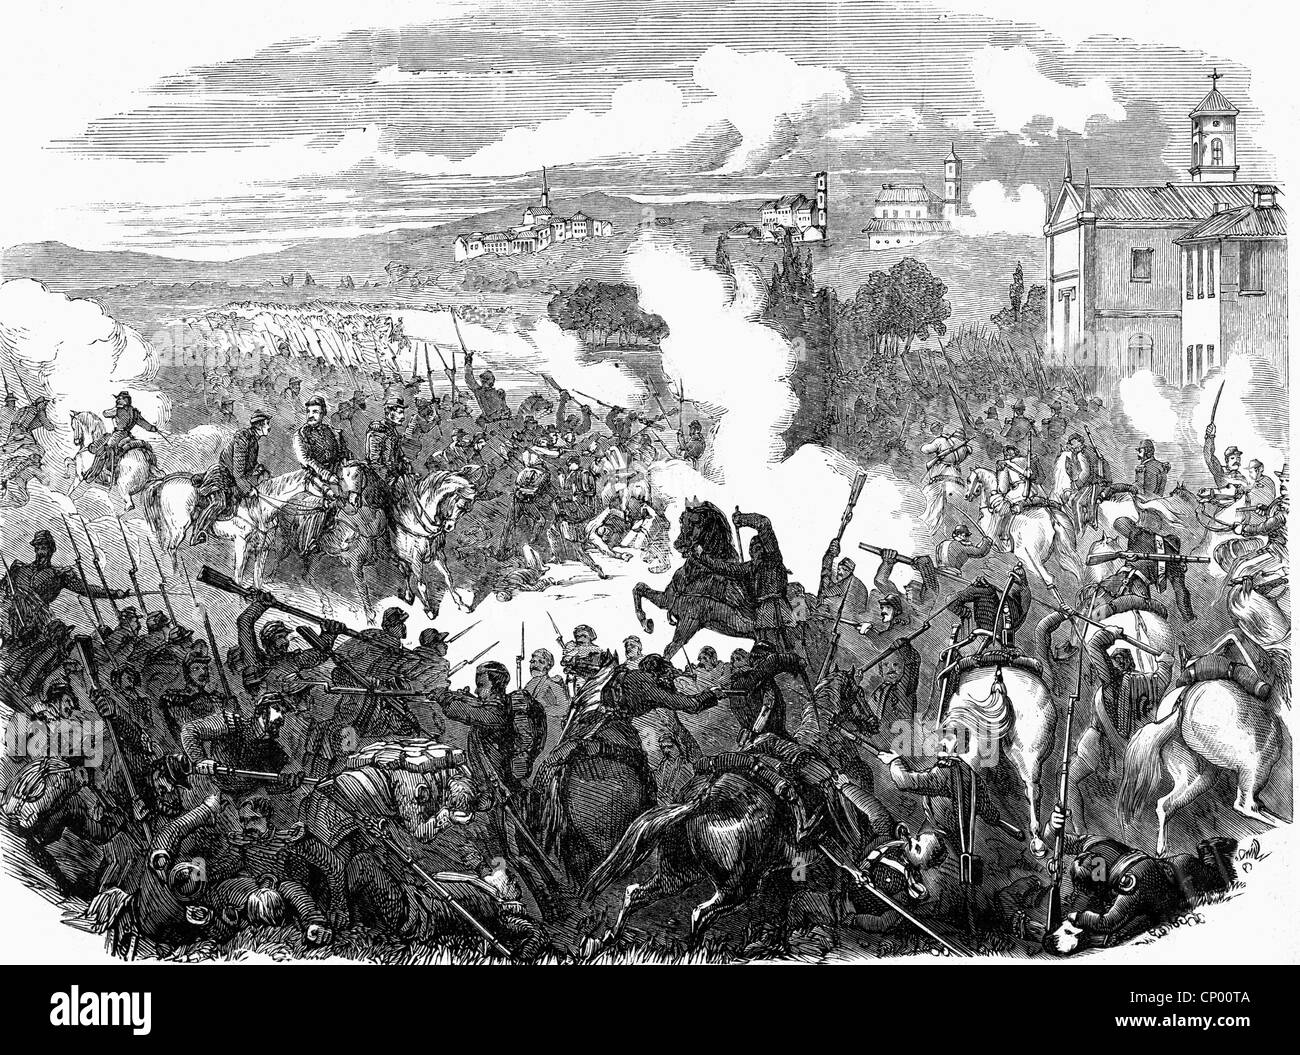 evsnts, Second Italian War of Independence 1859, Battle of Montebello, 20.5. 1859, wood engraving, 19th century, Italy, Unification Wars, French,  France, ...